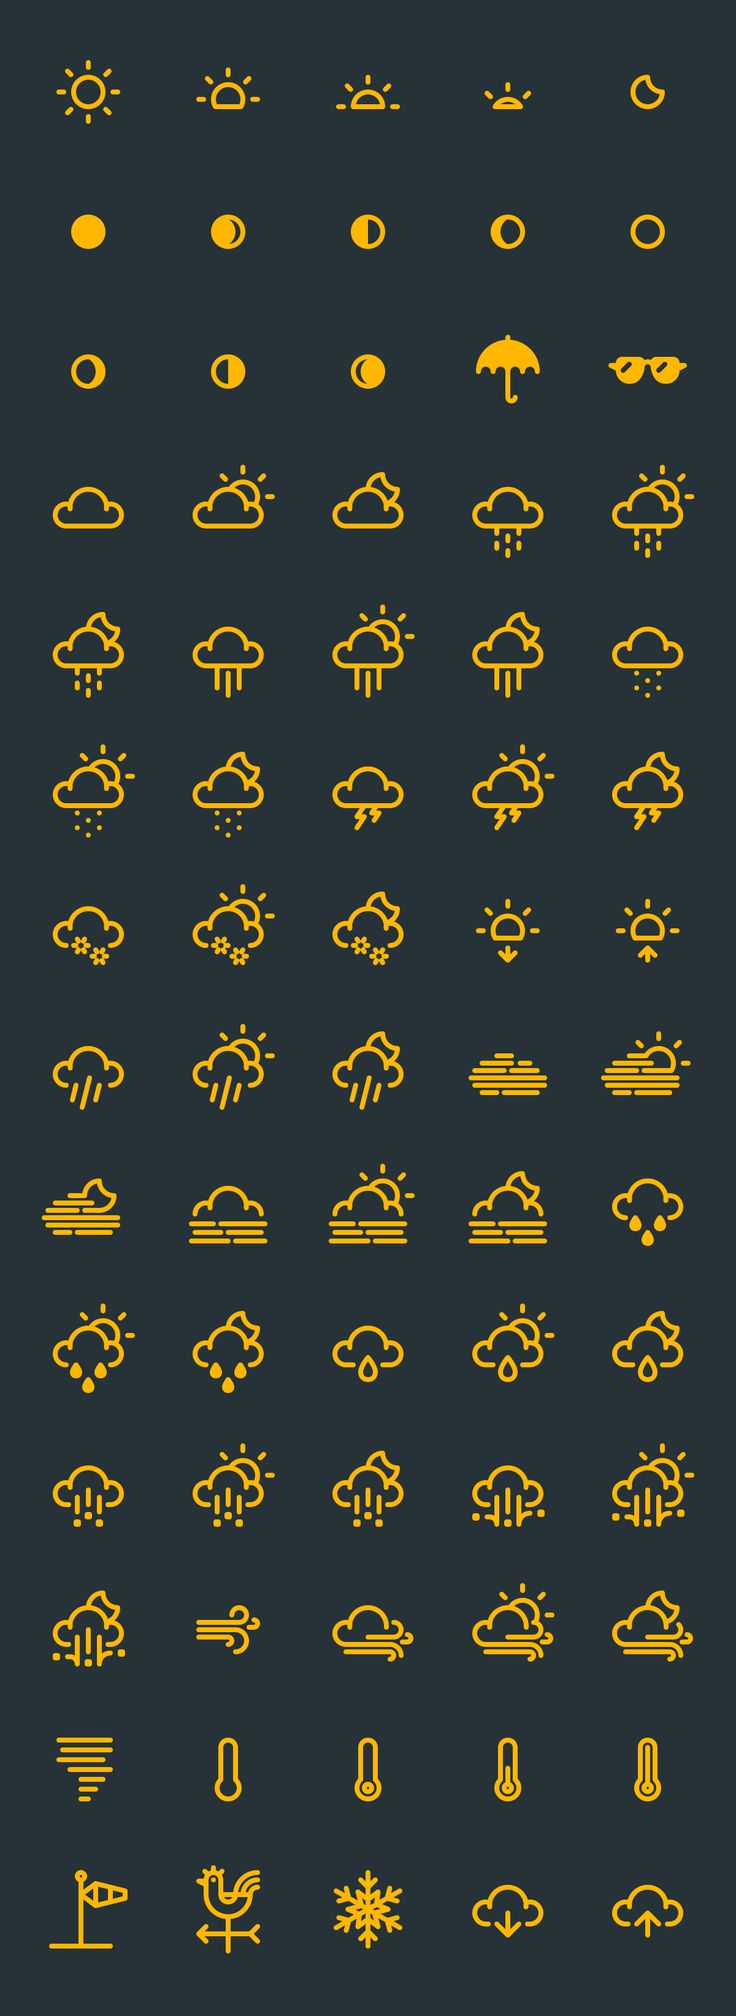 weather vector icons best free icon sets theThe